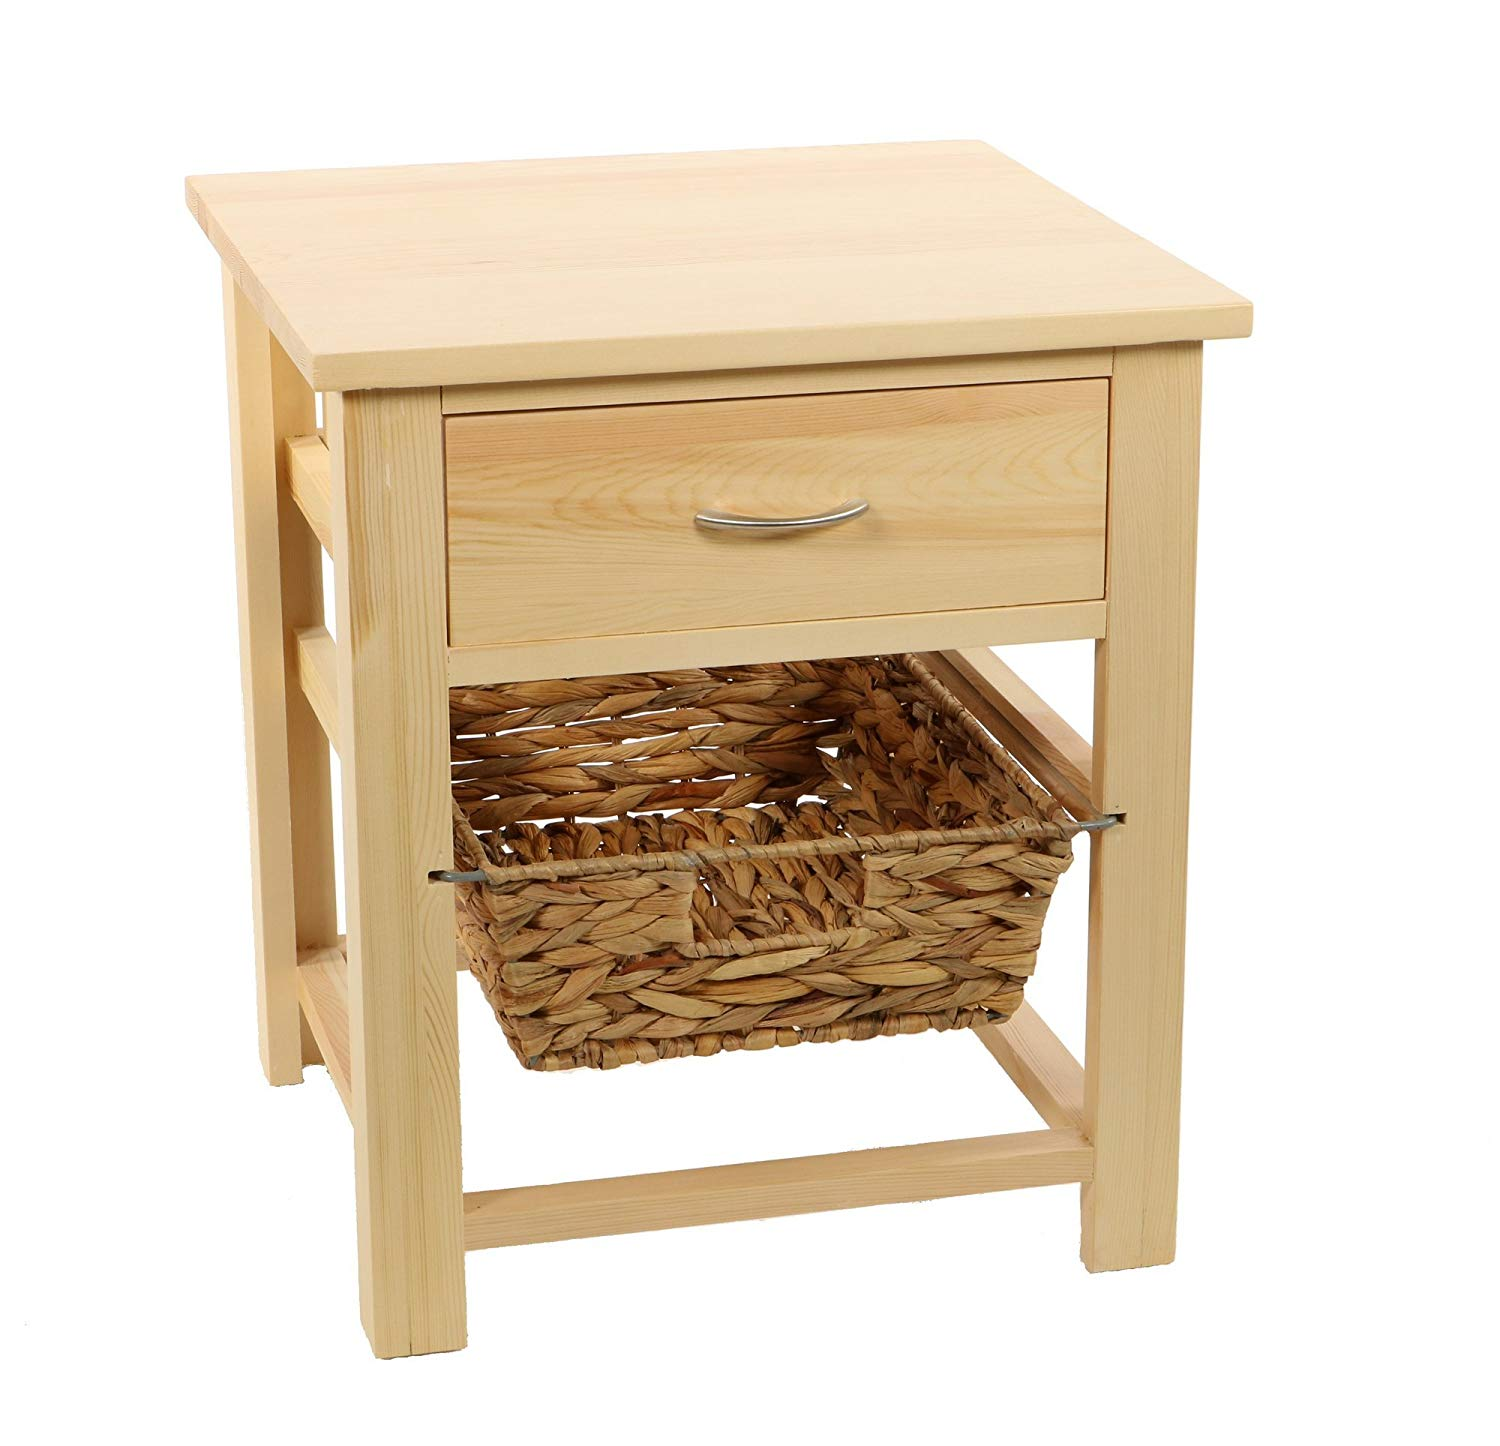 DECOMANIA- bedside table nightstand 1 drawer and 1 hanging basket